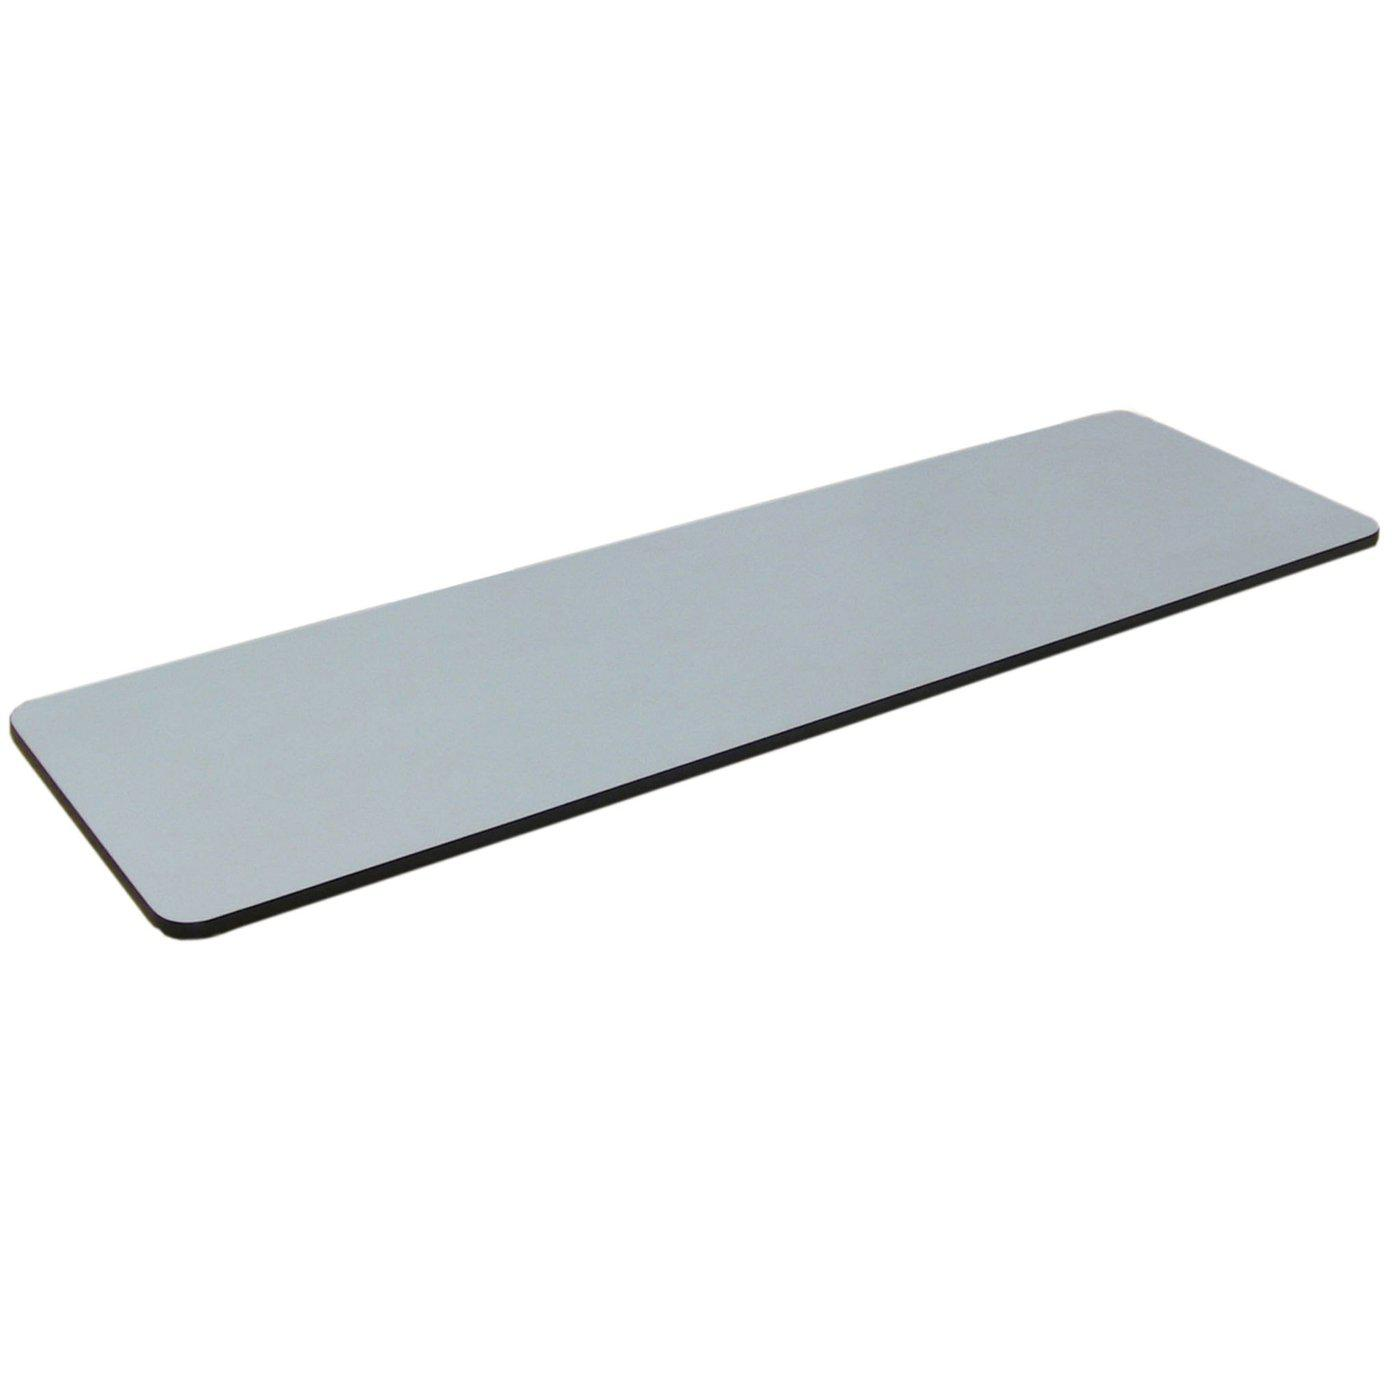 Storage Board-Cadaver Trays-Mortech Manufacturing Company Inc. Quality Stainless Steel Autopsy, Morgue, Funeral Home, Necropsy, Veterinary / Anatomy, Dissection Equipment and Accessories